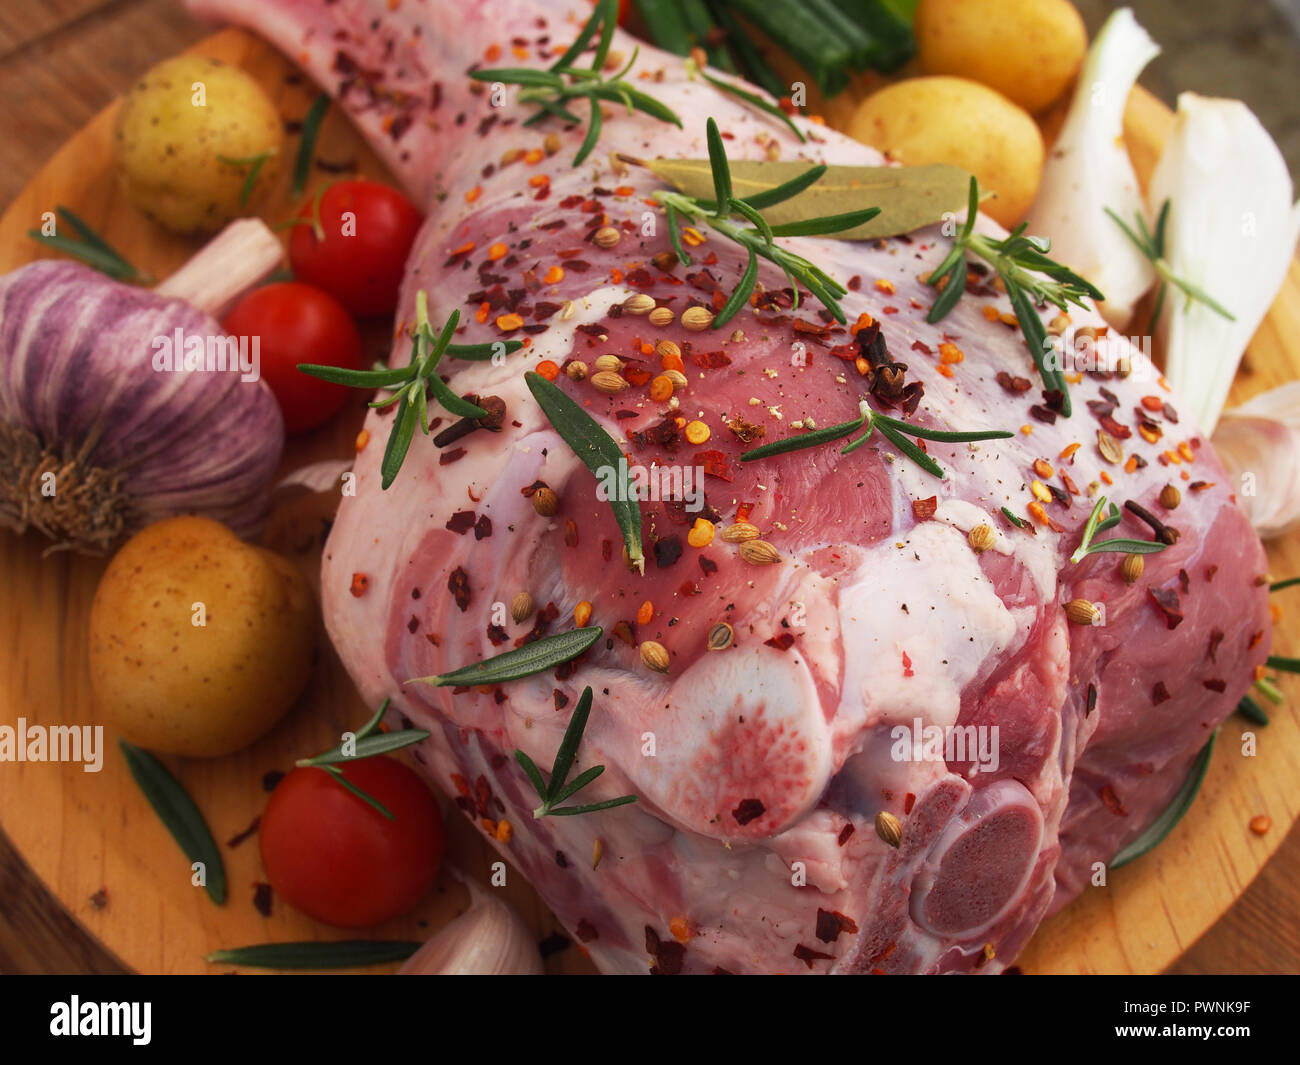 Fresh and raw meat. Leg of lamb on wood background - Stock Image